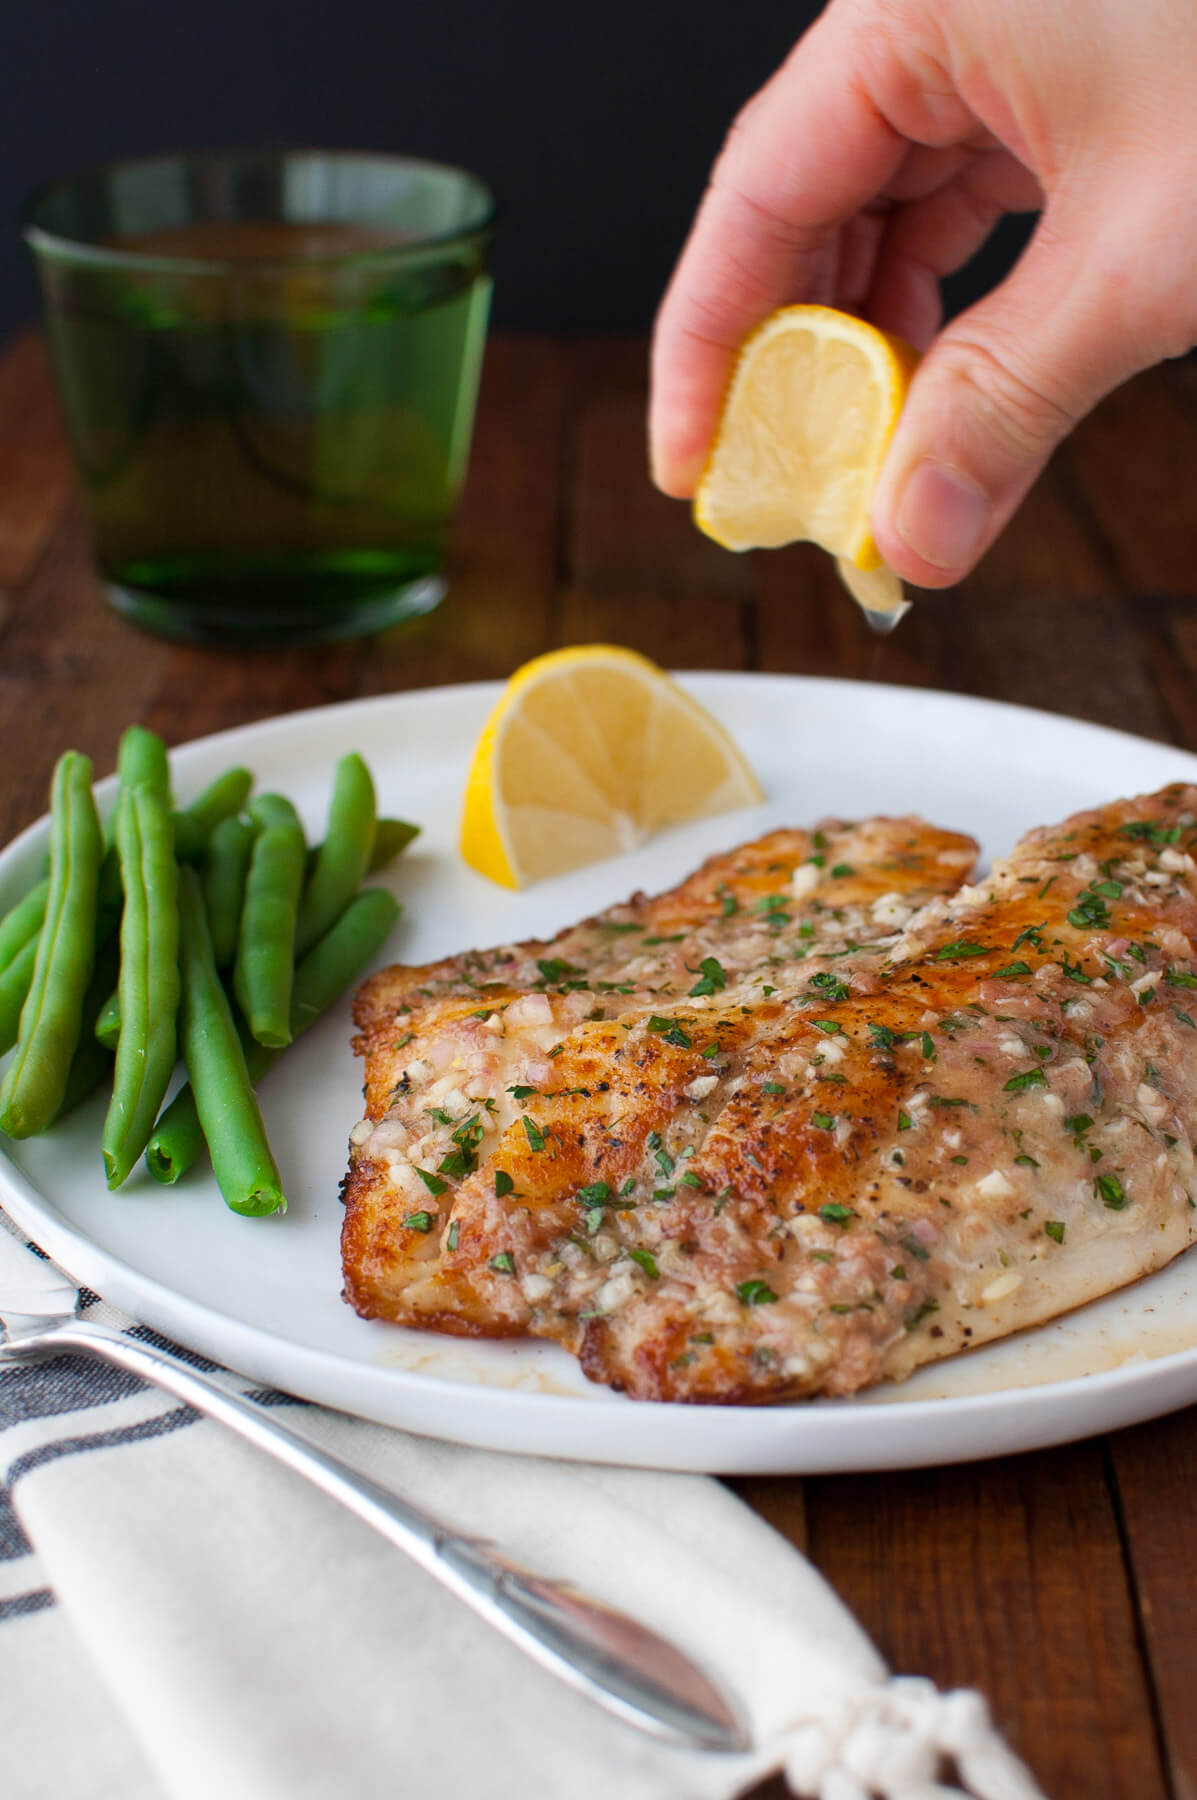 Fresh lemon juice being squeezed on a sautéed tilapia fillet with green beans and lemon wedges on a white plate.